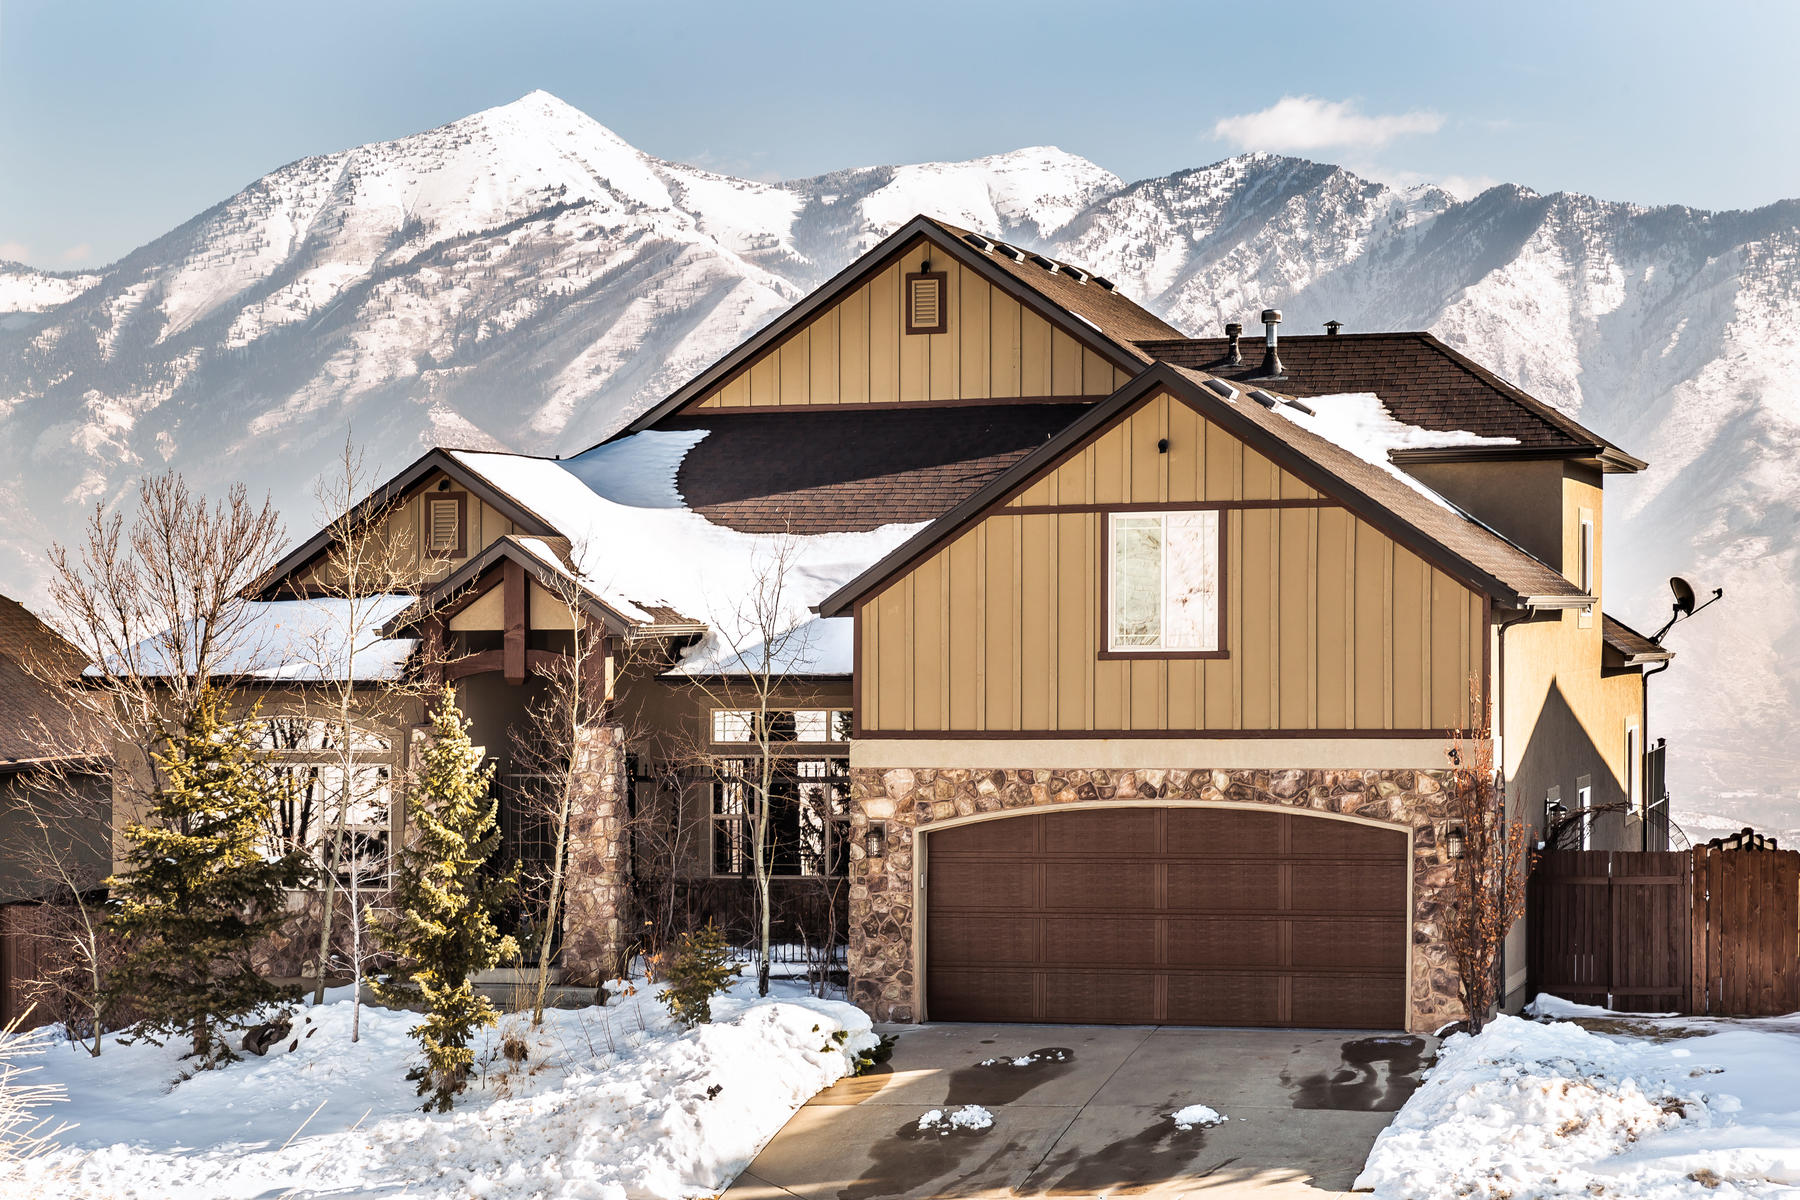 Single Family Homes for Active at Main Floor Living At It's Finest 15401 S Eagle Crest Dr Draper, Utah 84020 United States